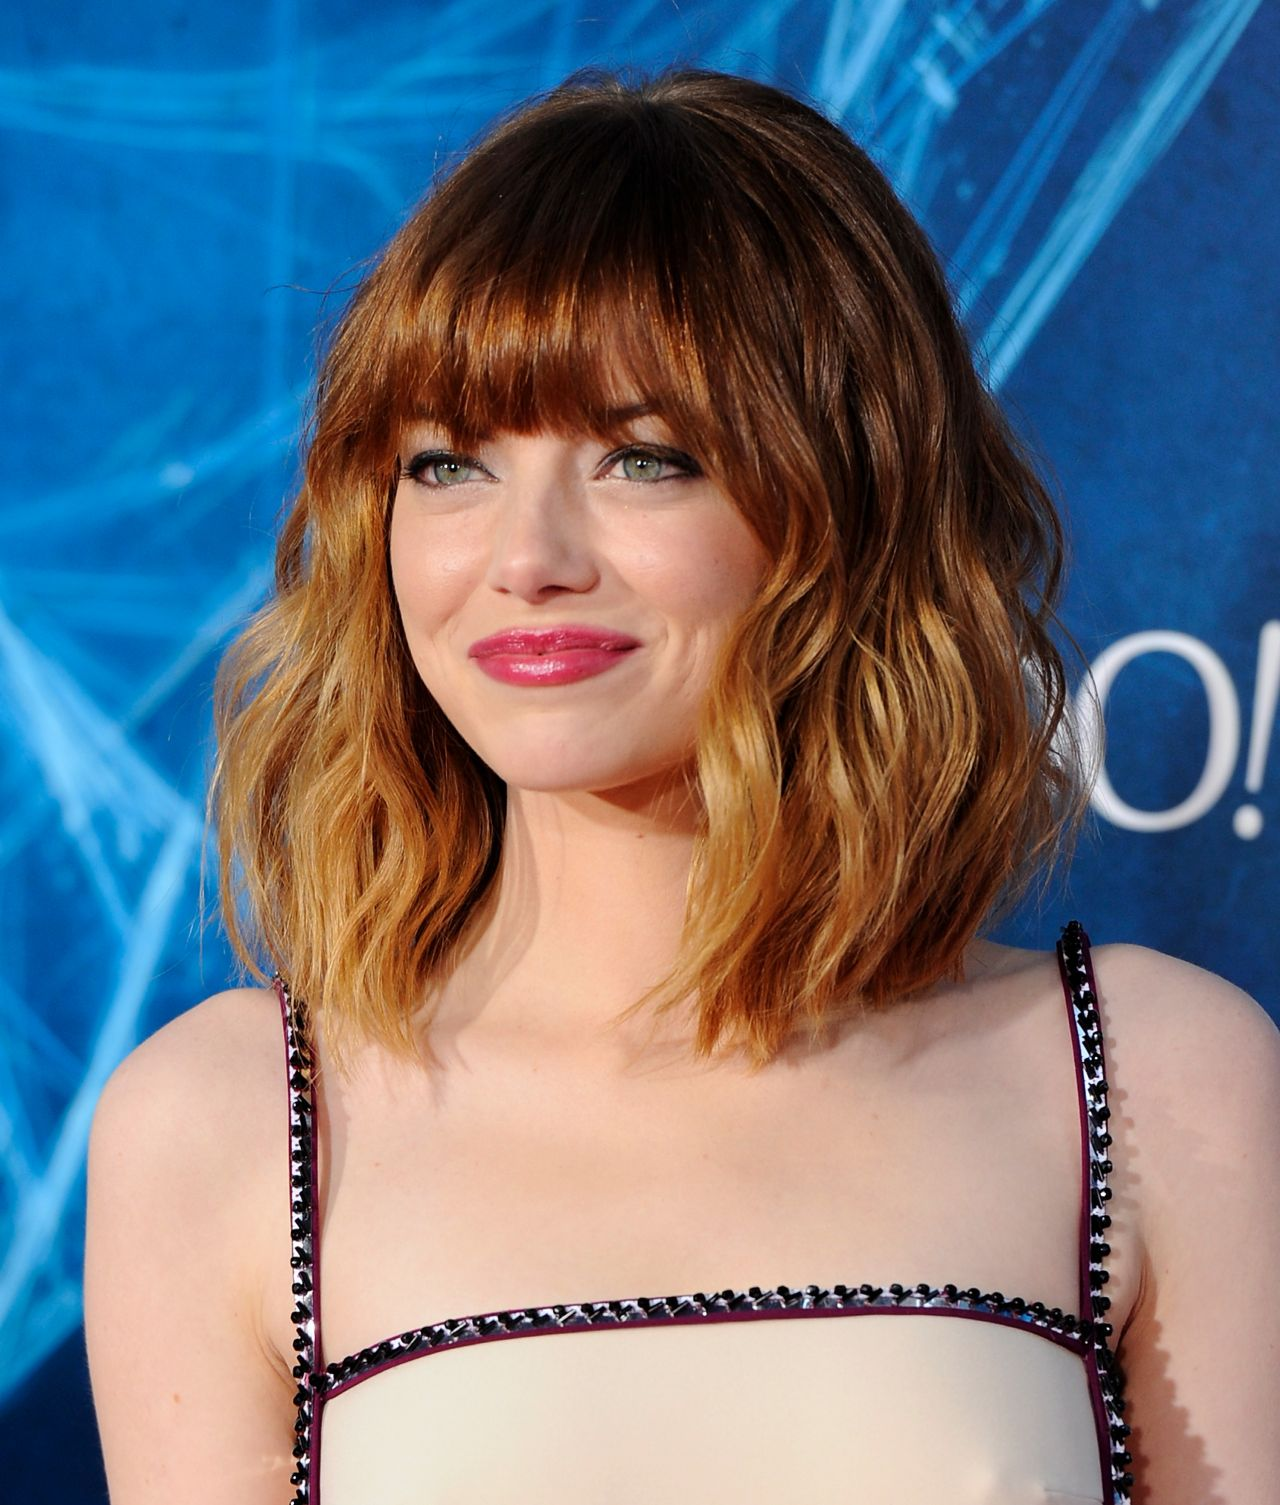 emma-stone-the-amazing-spider-man-2-premiere-in-new-york-city_1